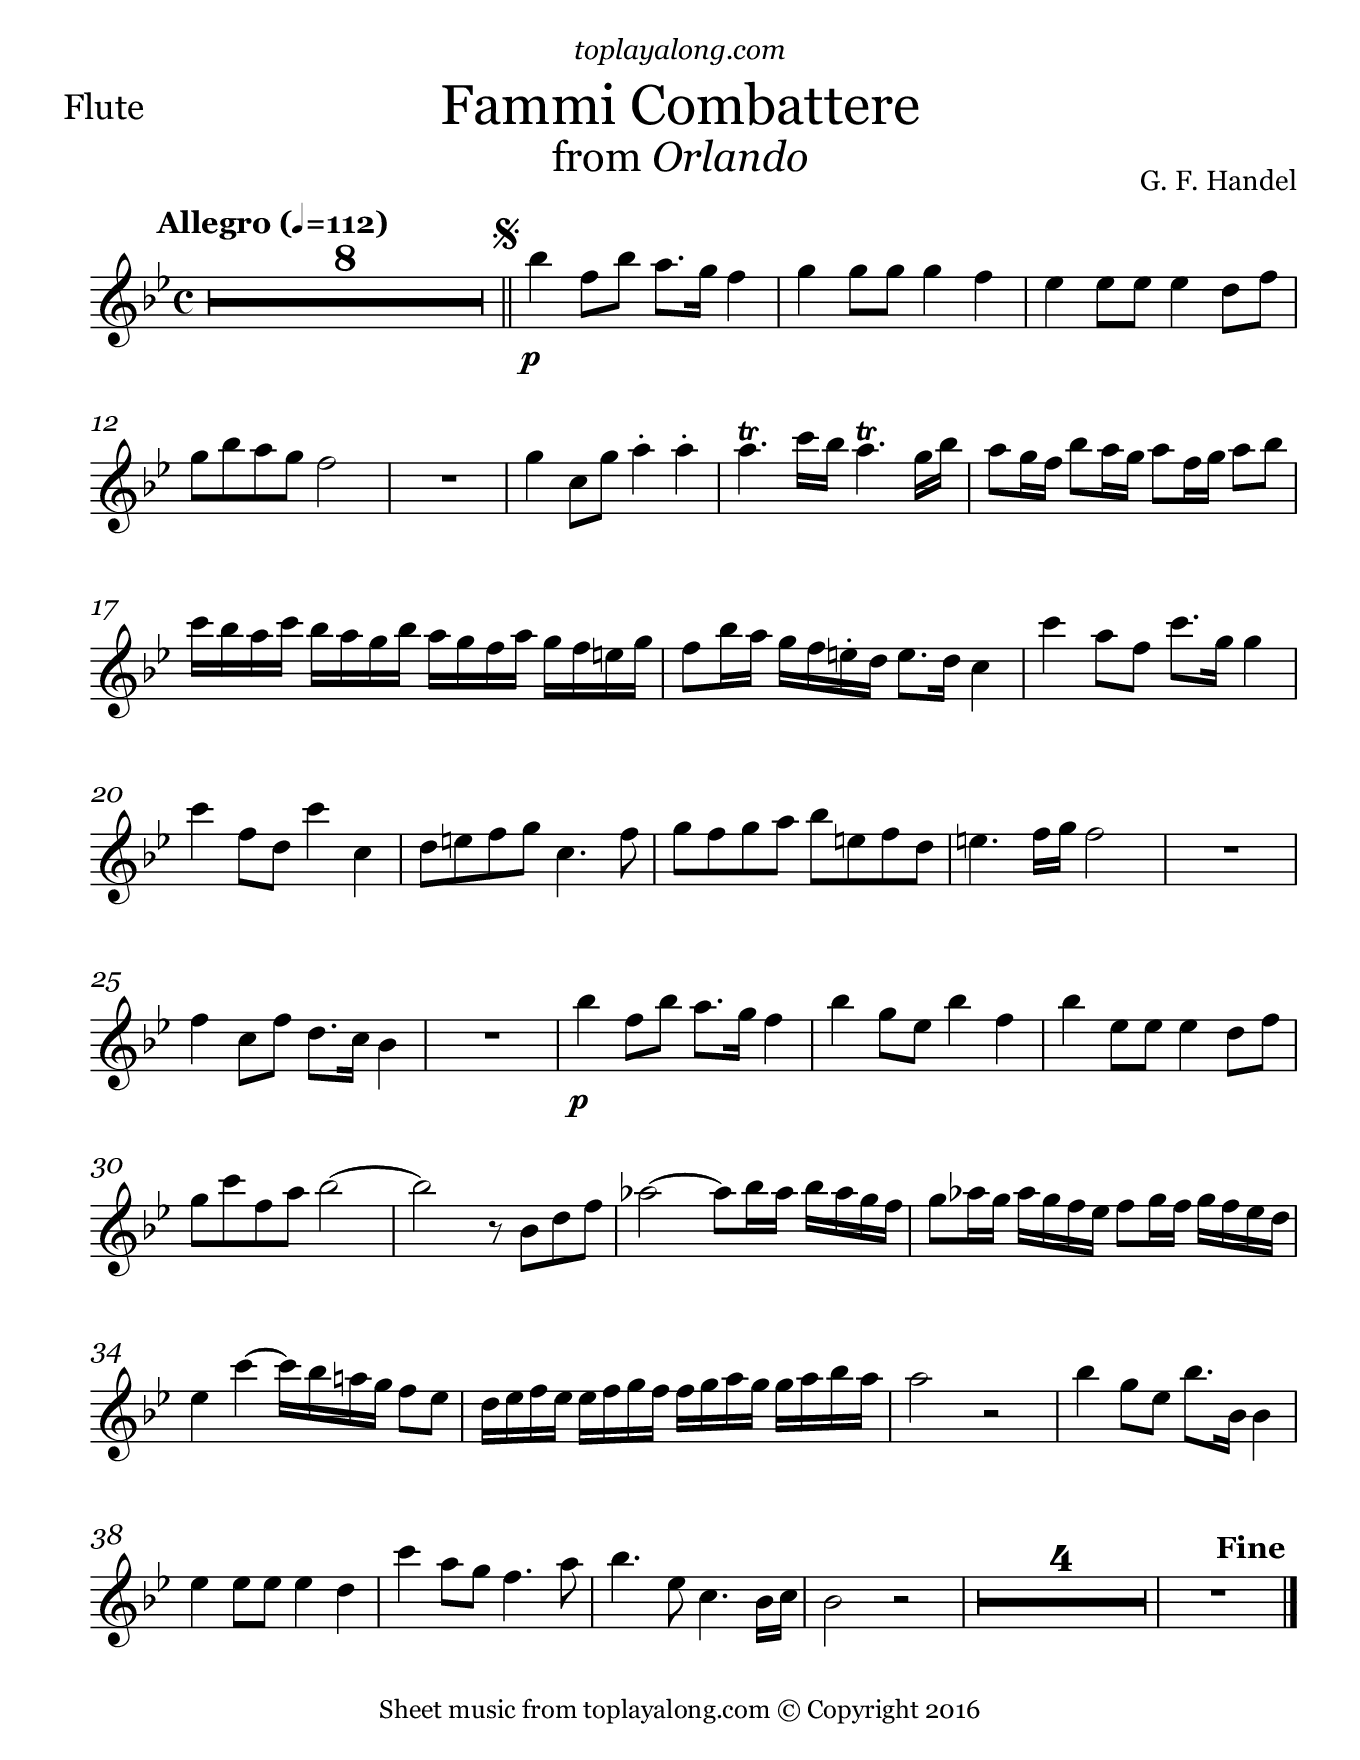 Fammi Combattere from Orlando by Handel. Sheet music for Flute, page 1.